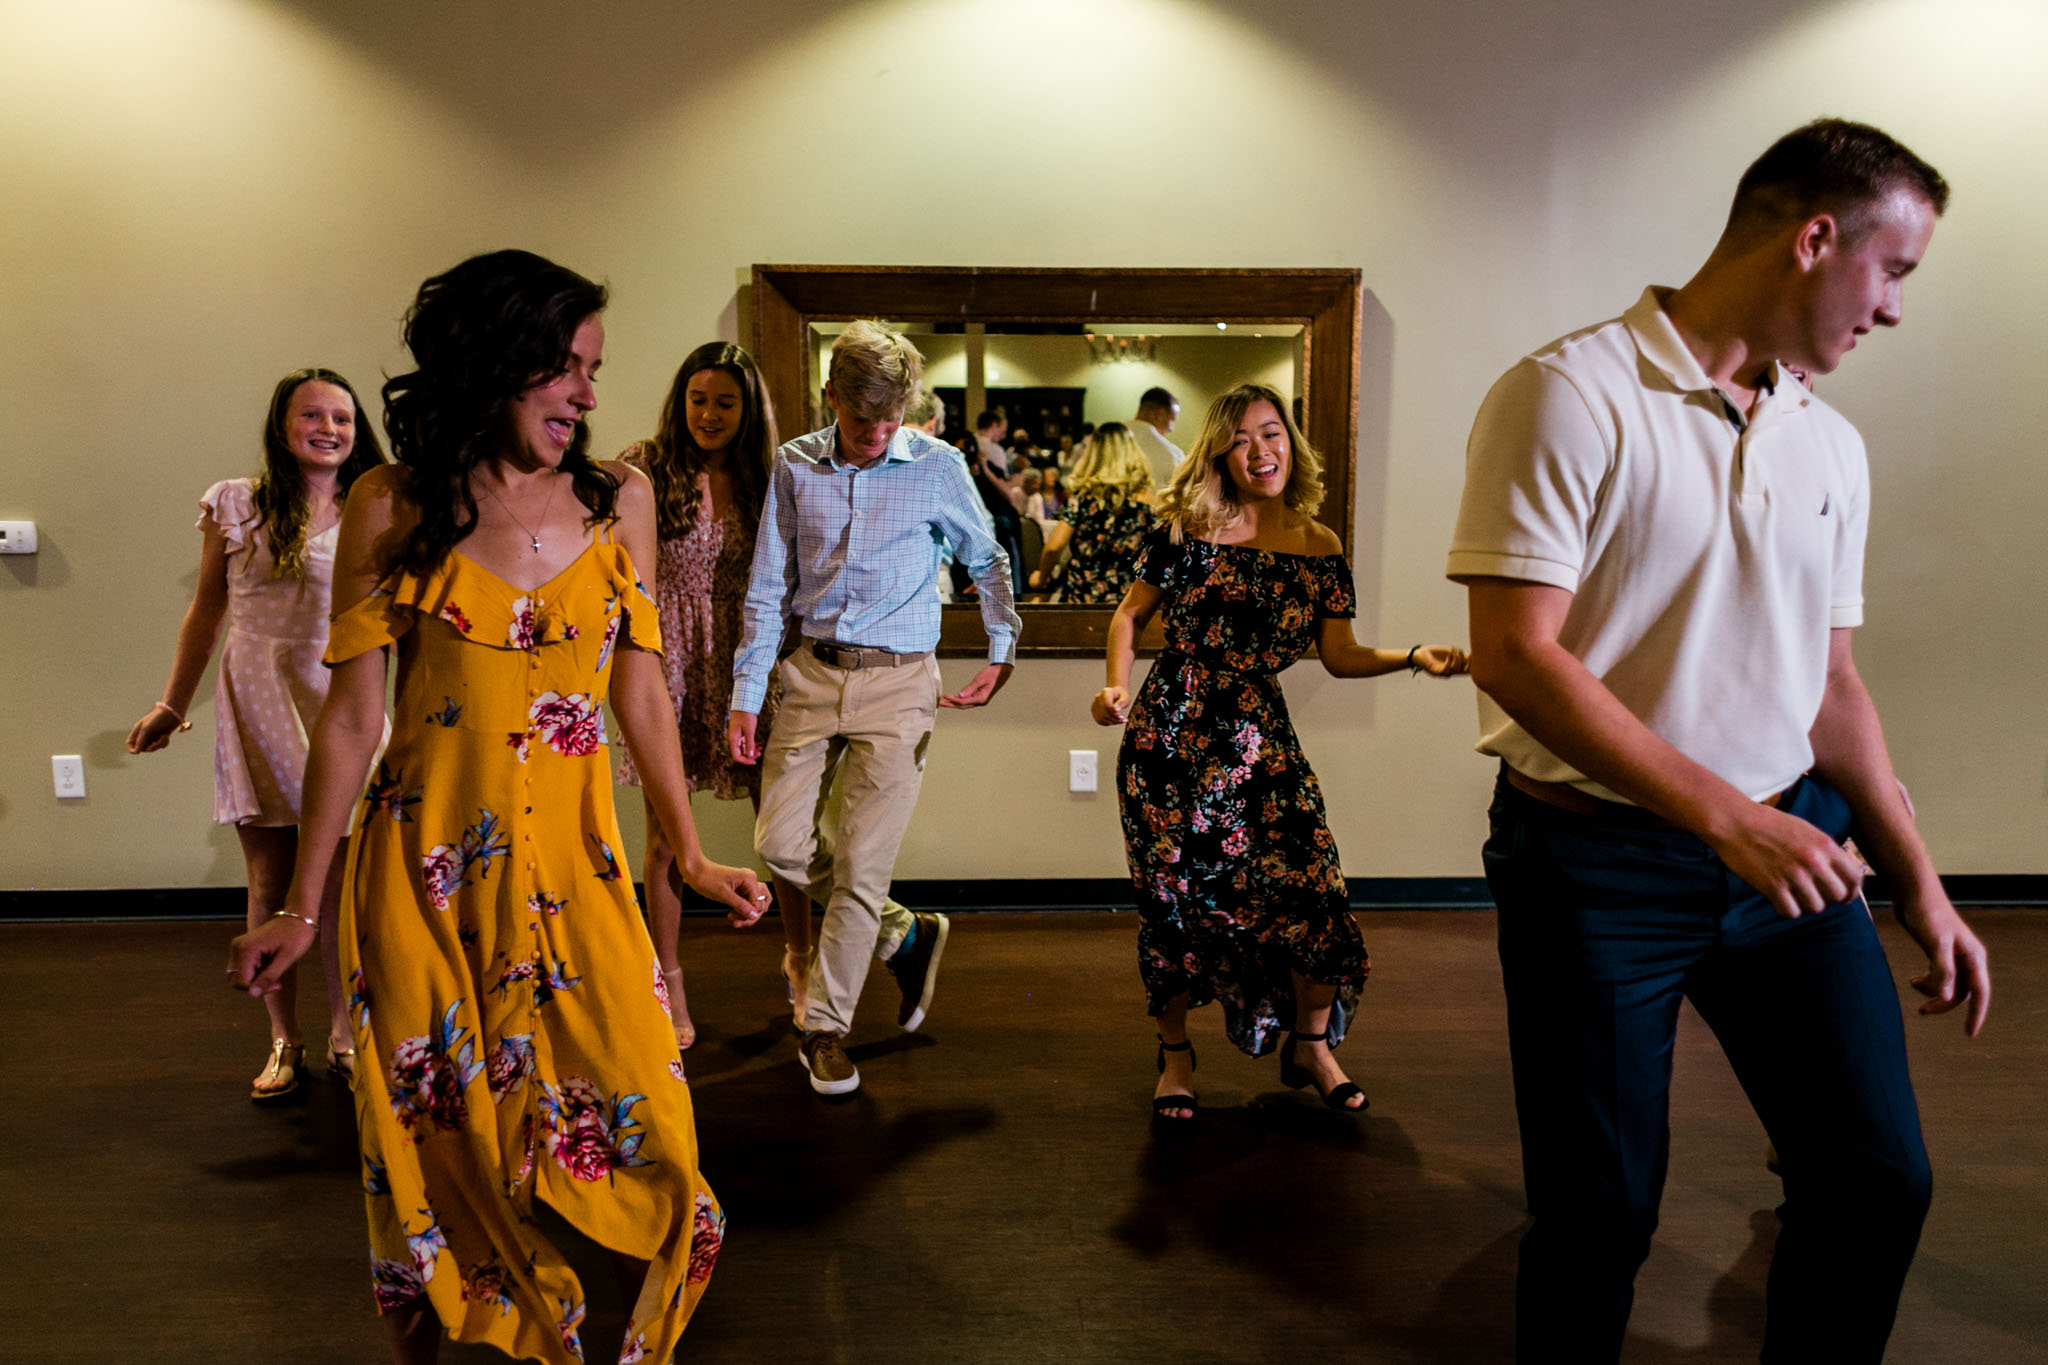 People dancing at wedding reception at Royal Banquet Conference Center | Raleigh Wedding Photographer | By G. Lin Photography